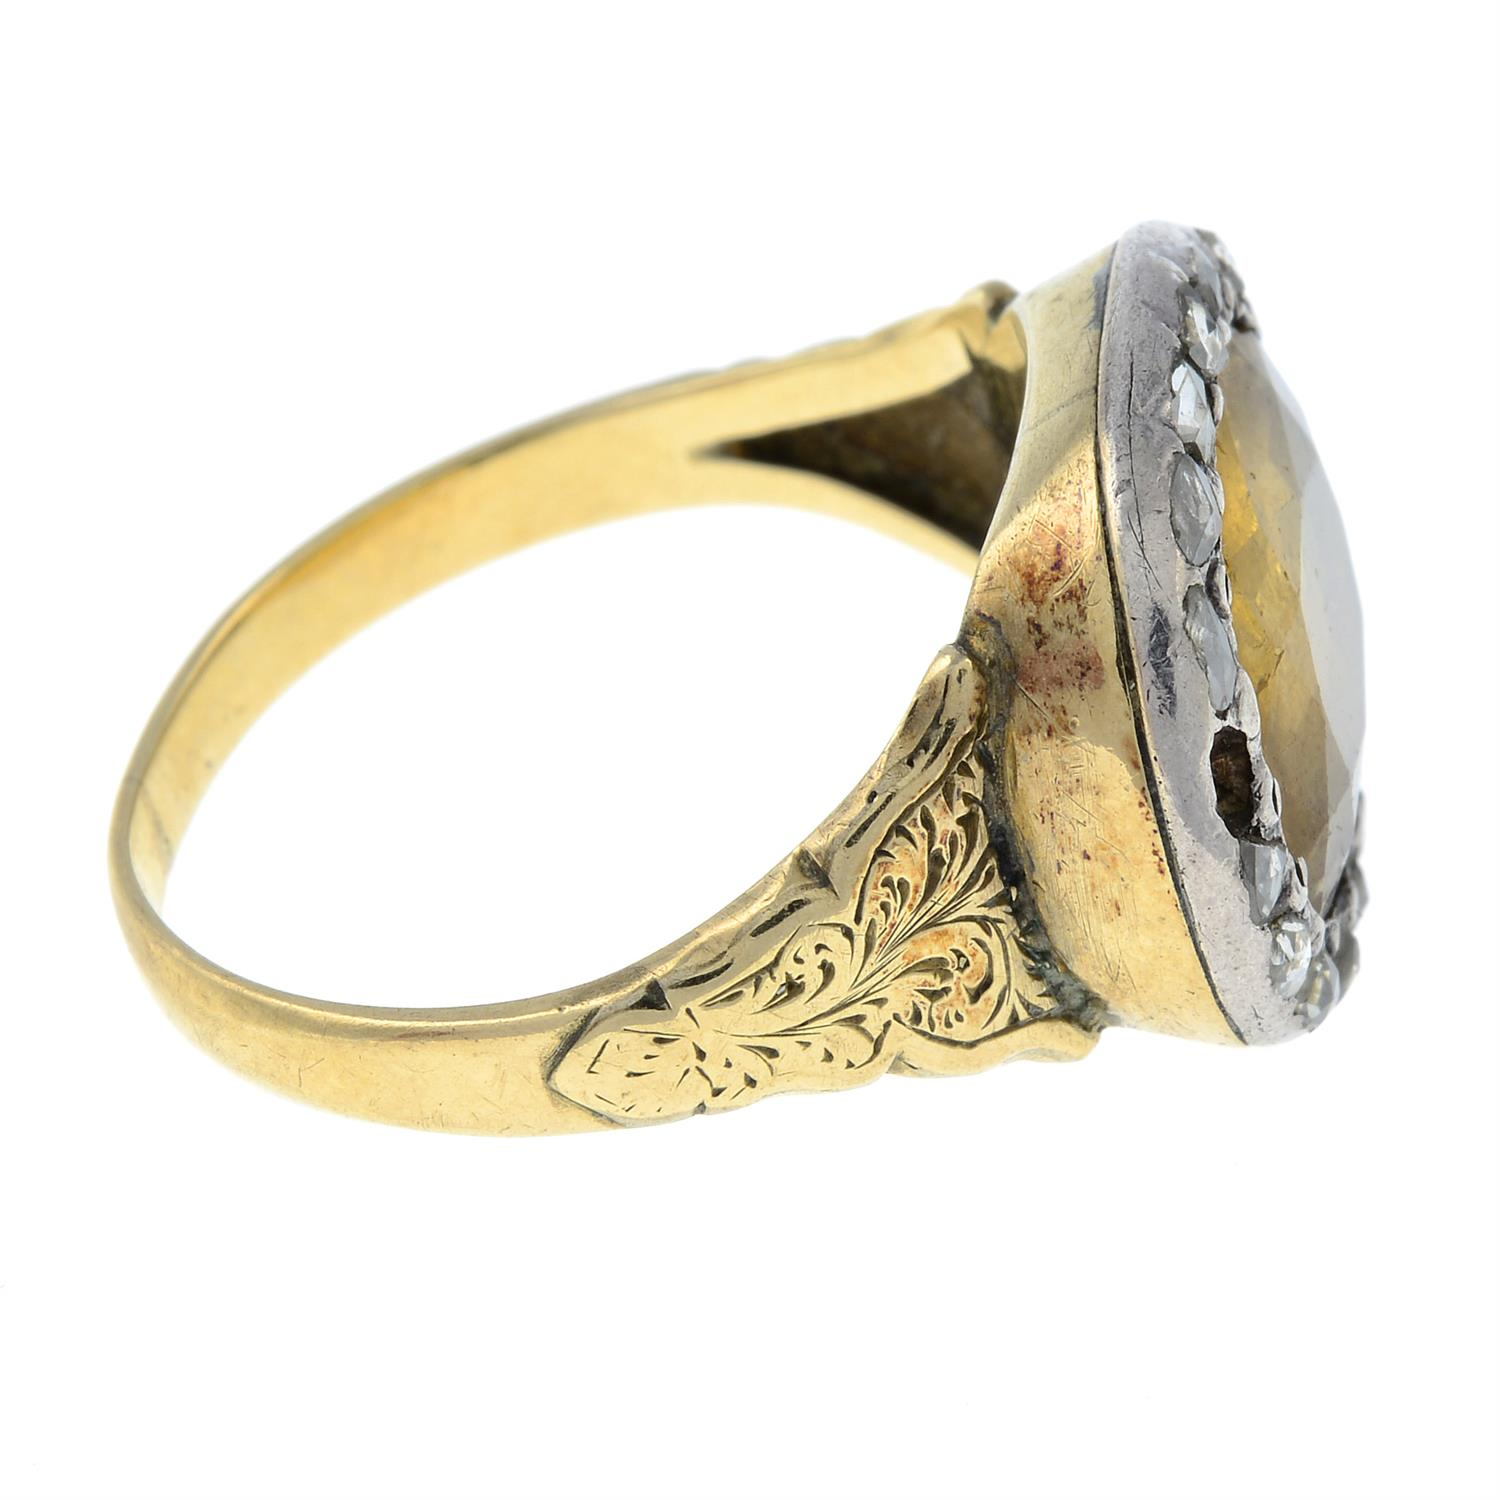 A late Georgian silver and gold, foil back golden topaz and rose-cut diamond ring. - Image 4 of 6